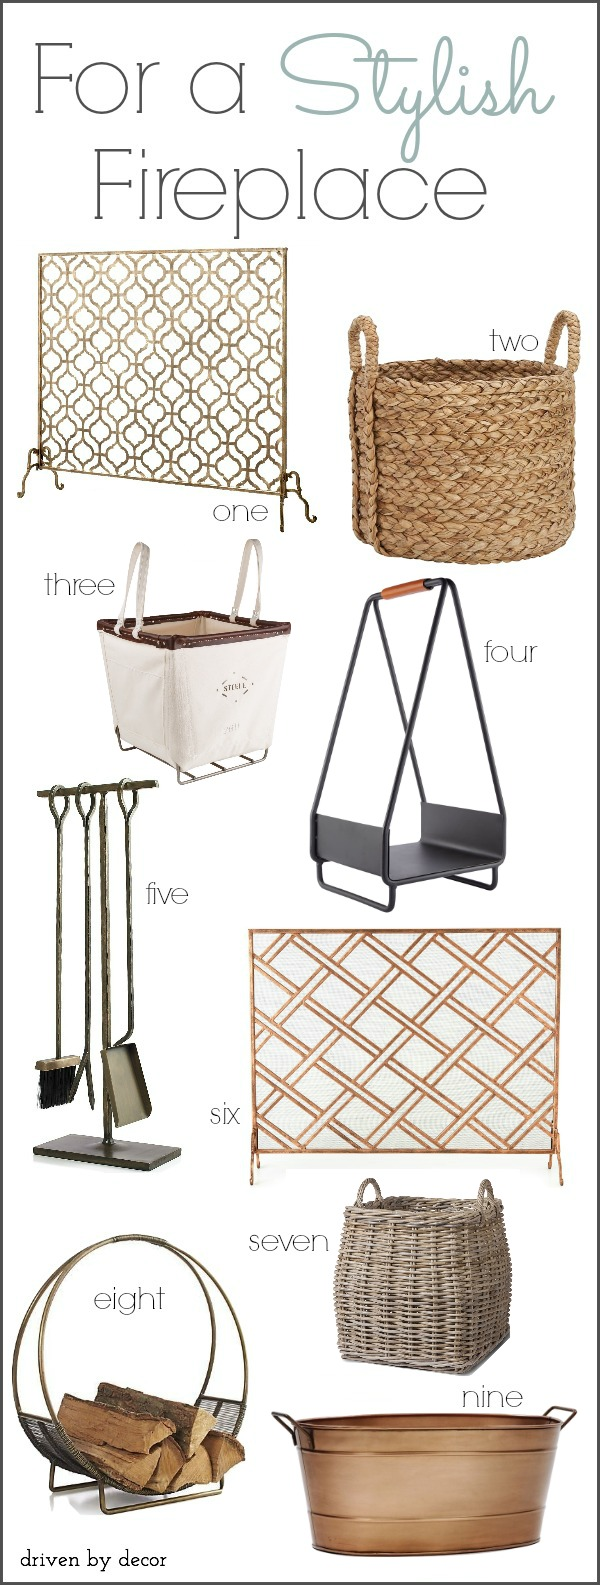 Stylish Fireplace Accessories (Fireplace Screens, Log Holders, & Tools) - Post includes links!